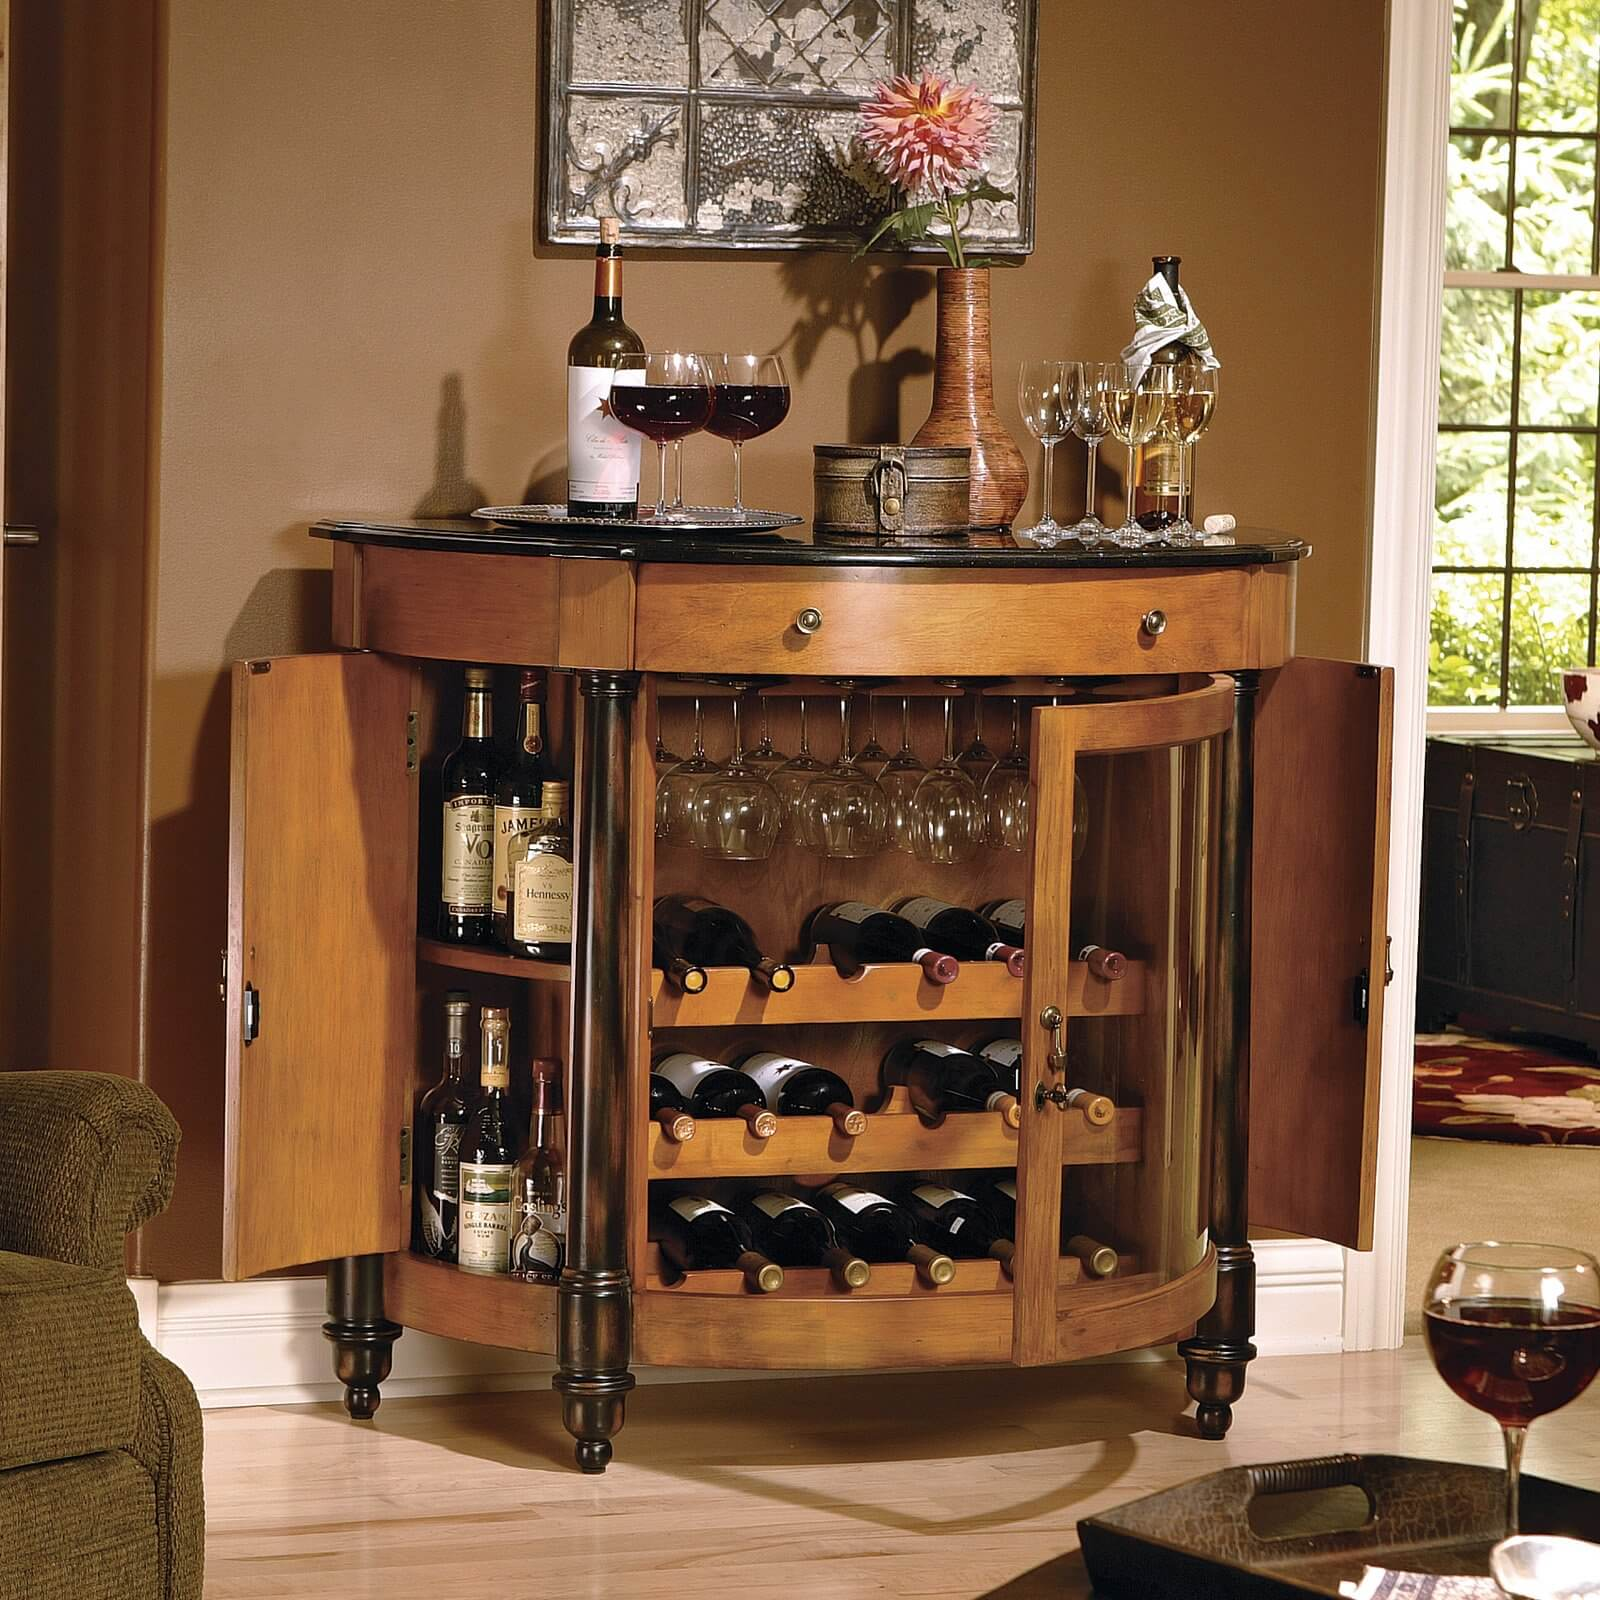 Gentil Hereu0027s A Home Bar For Wine Lovers With Itu0027s 18 Bottle Wine Rack.